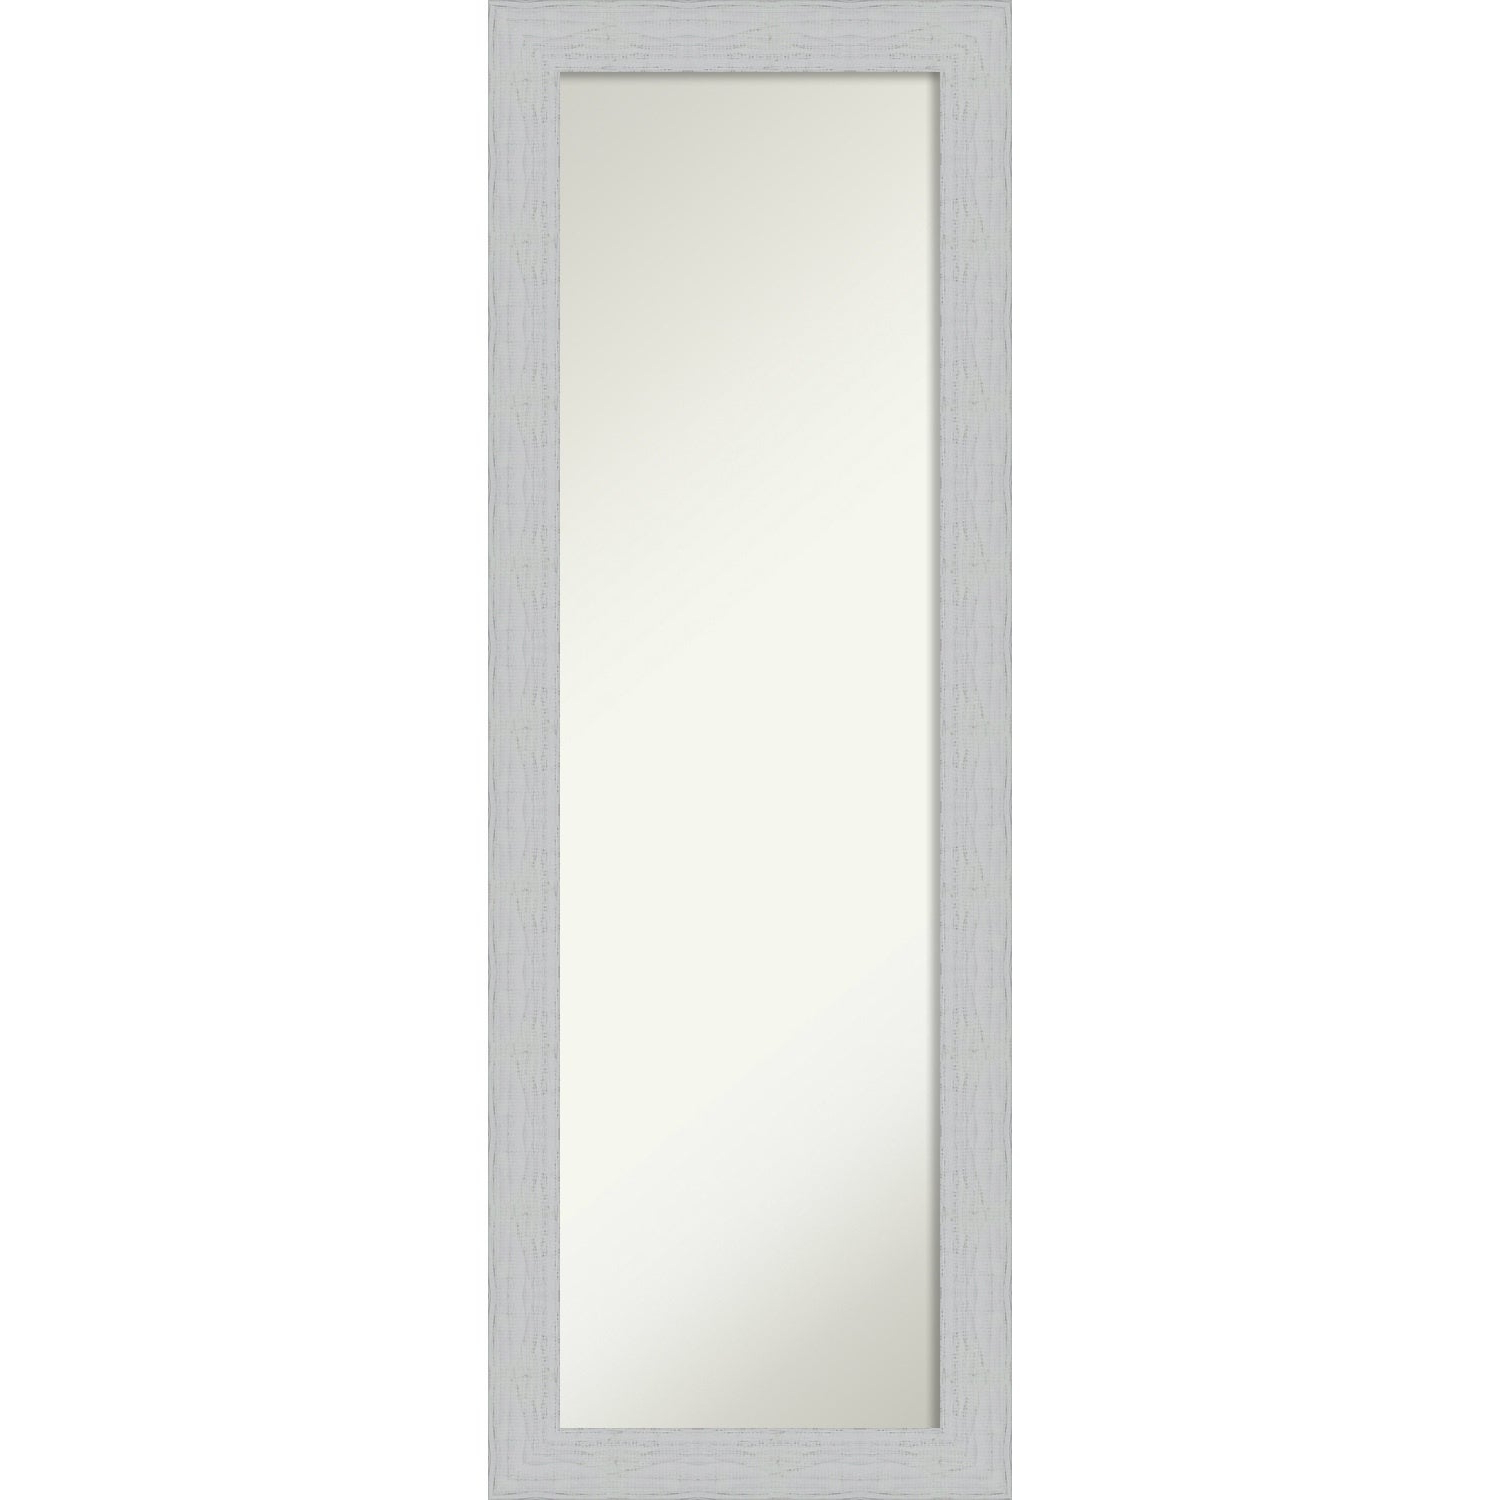 Full Size Wall Mirrors Inside Well Known On The Door Full Length Wall Mirror, Shiplap White: Outer Size 18 X 52 Inch (View 3 of 20)